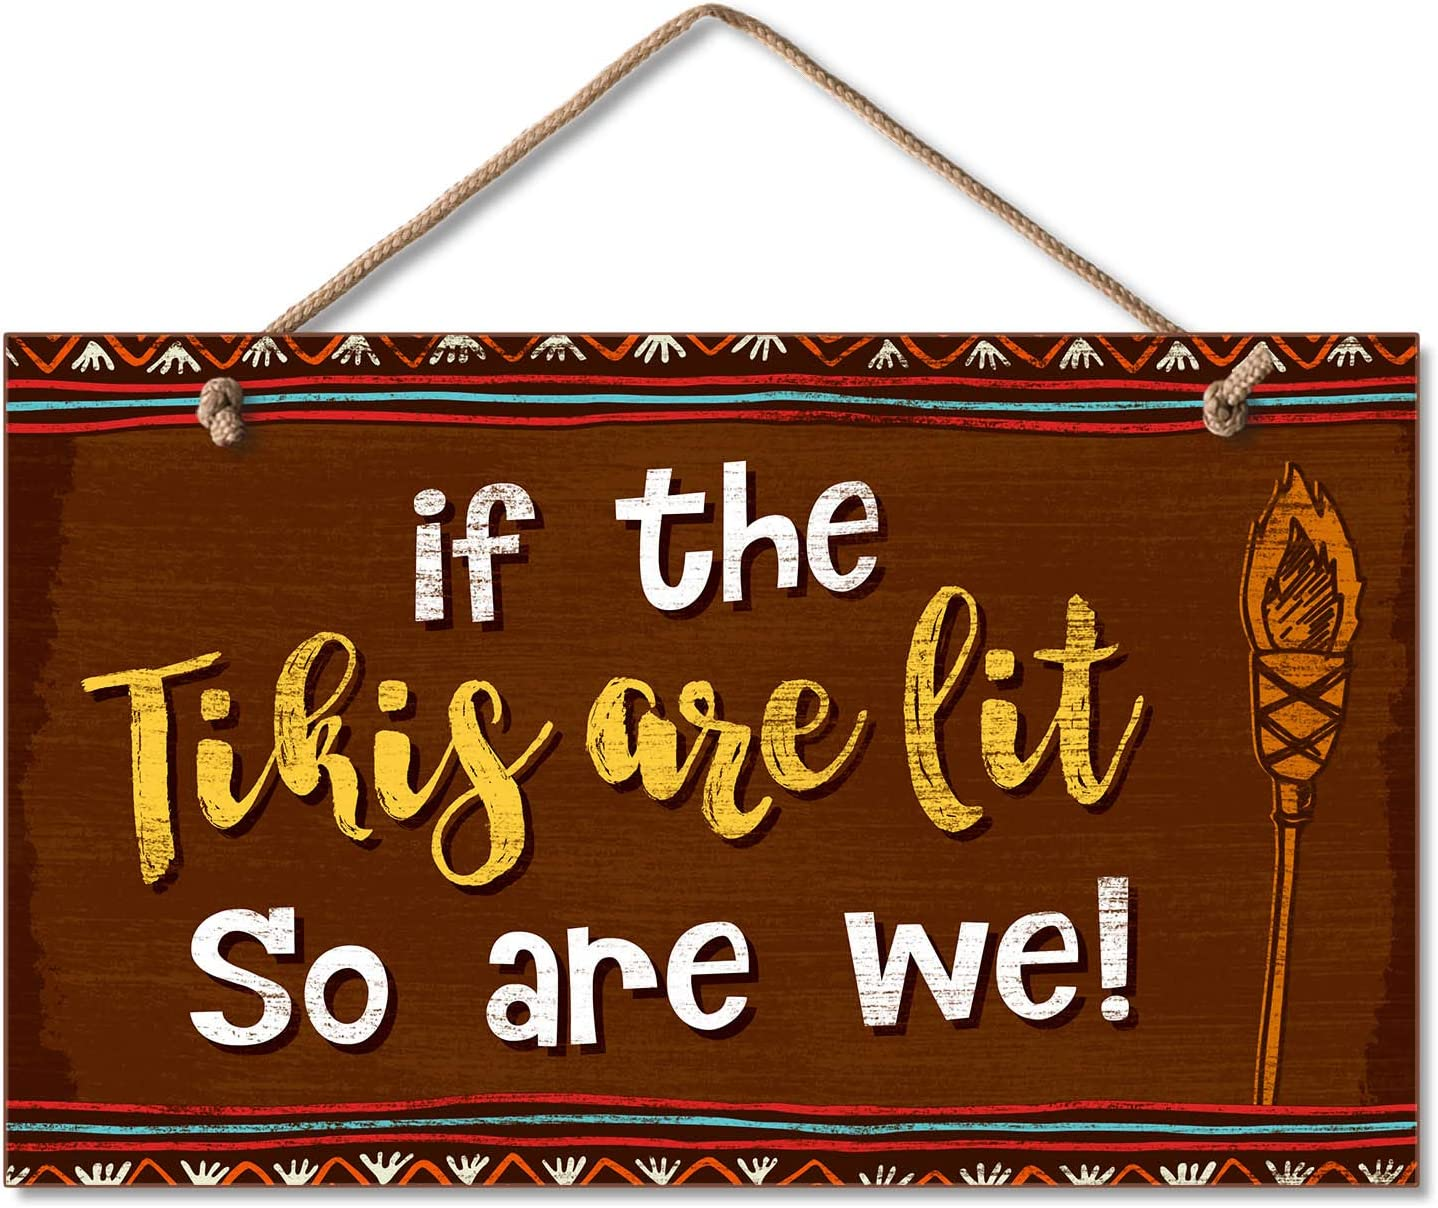 Highland Home CounterArt Everyday Wisdom Hanging Wood Sign Tikis are Lit So are We - Made in USA